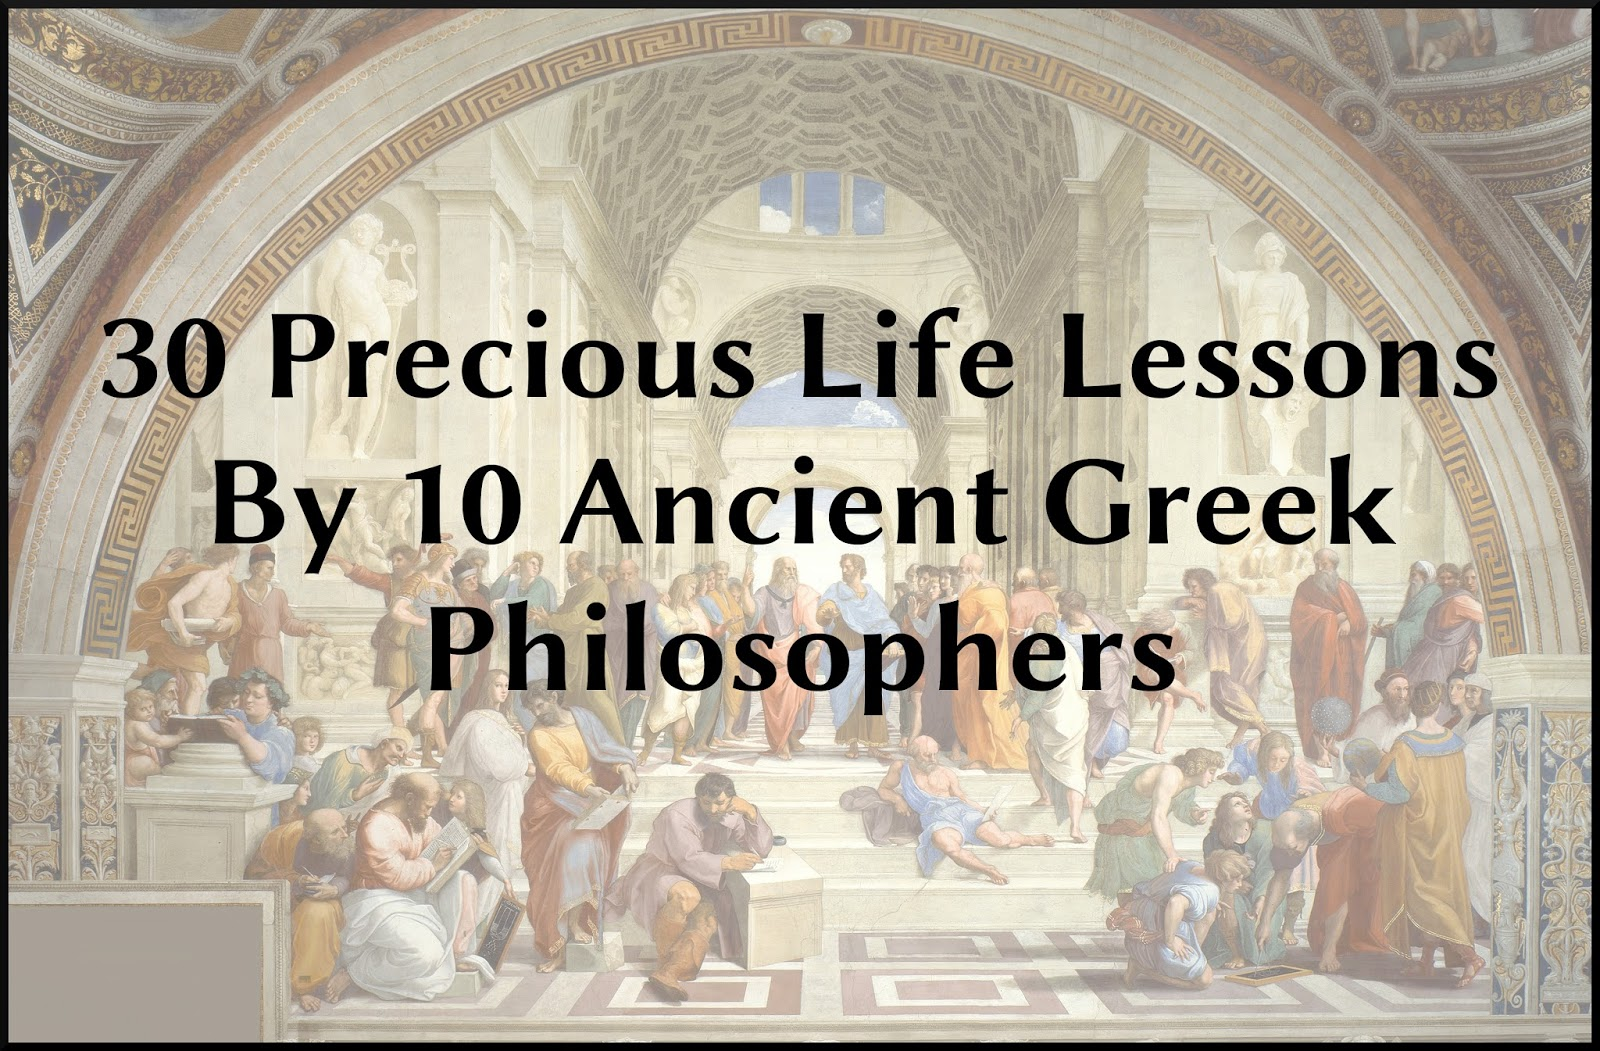 30 Precious Life Lessons By 10 Ancient Greek Philosophers